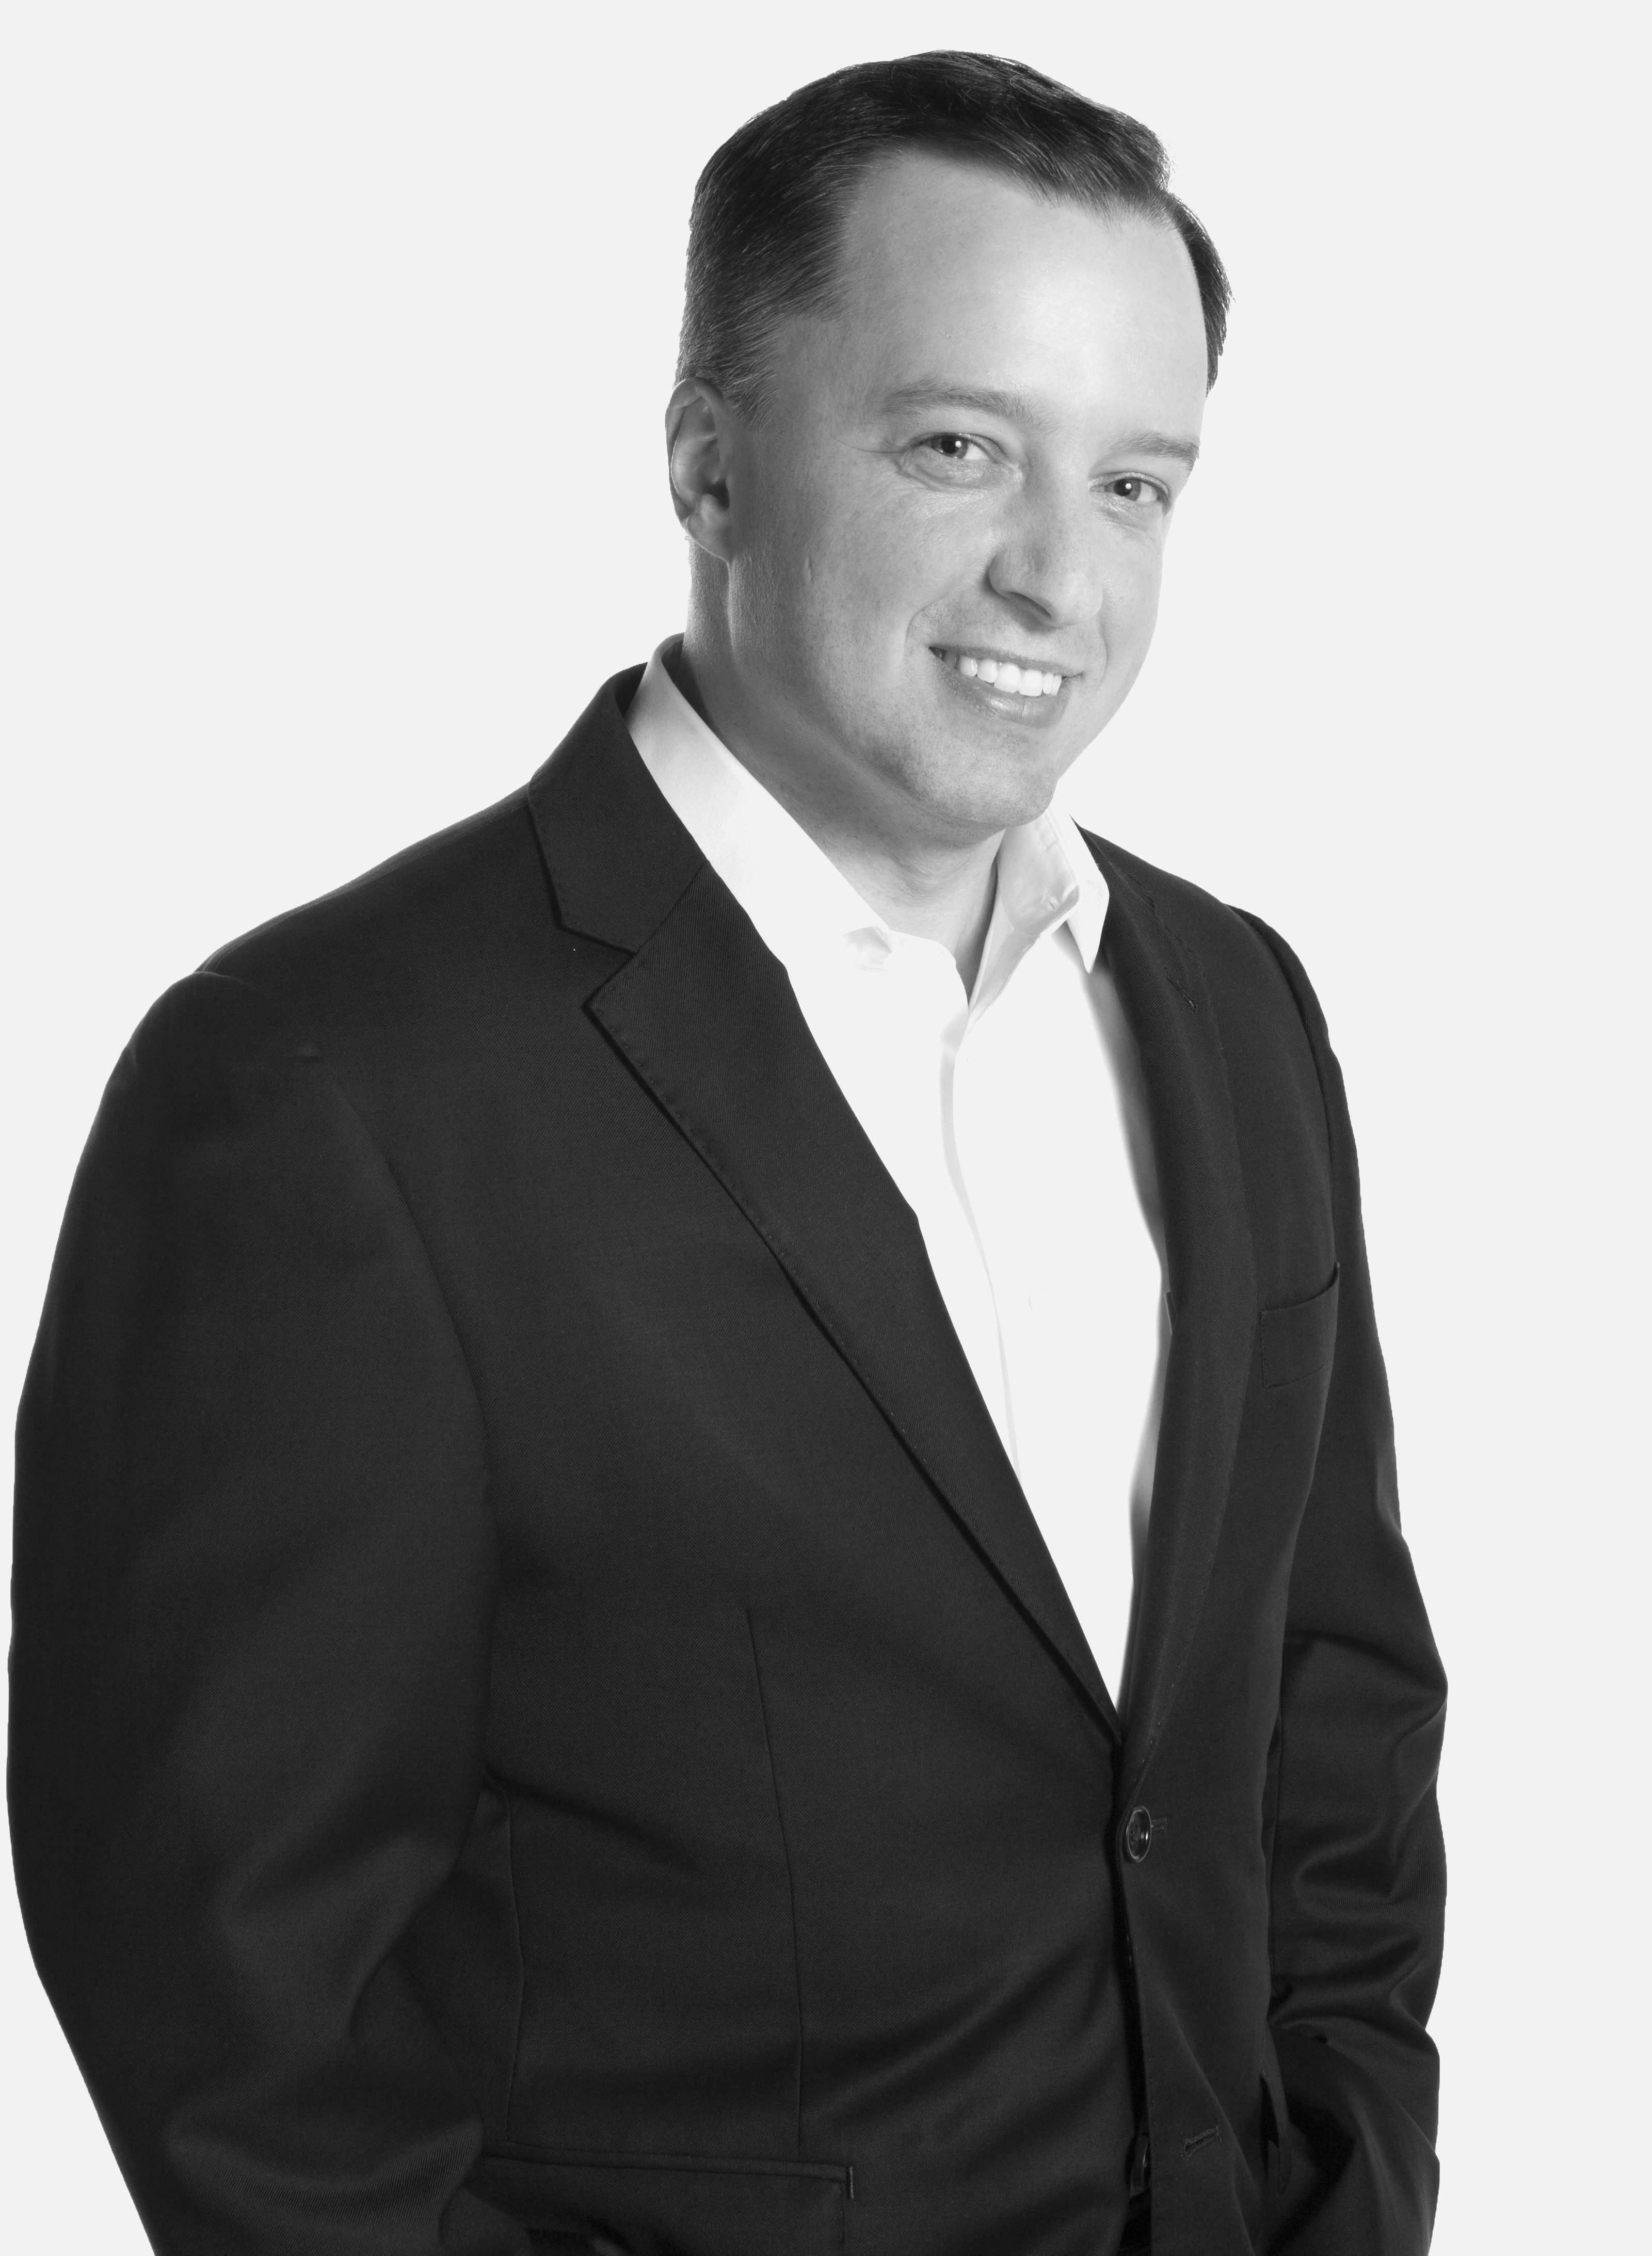 About The Show Marketing Today With Alan Hart